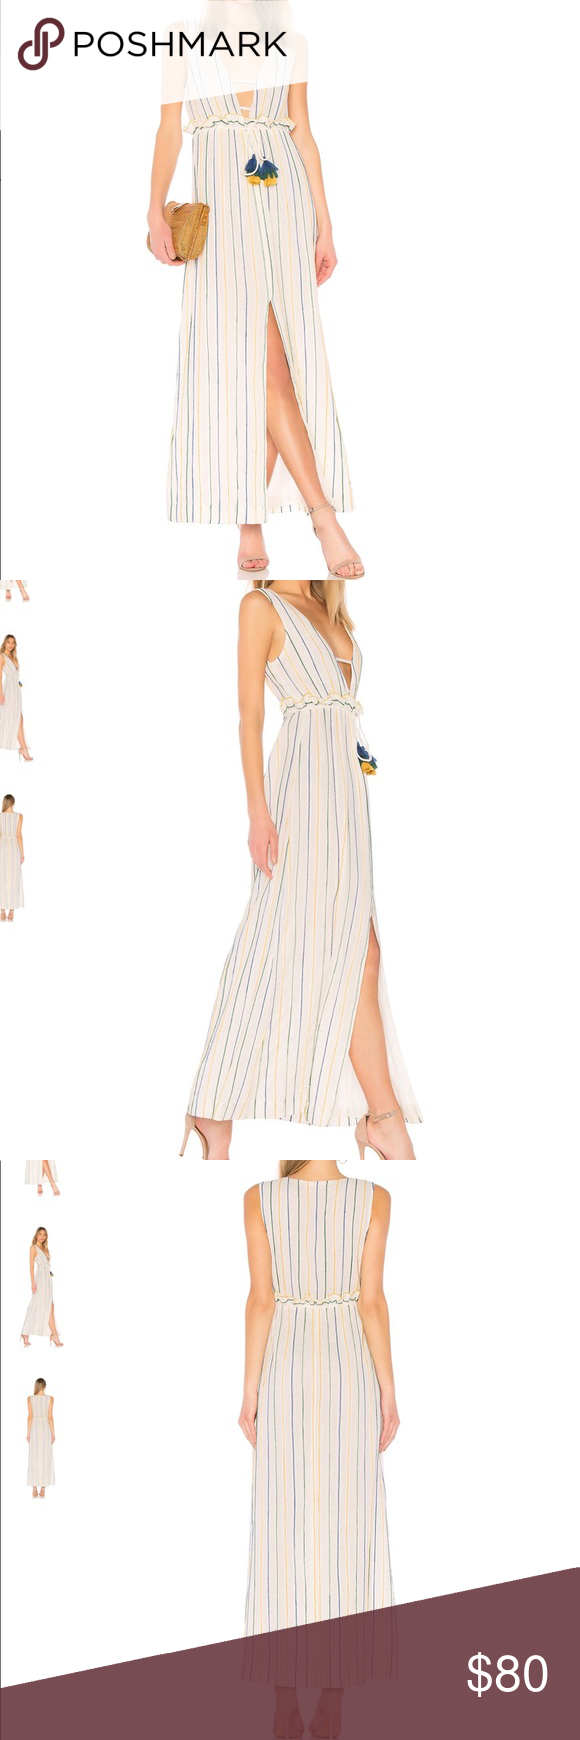 e407f1ae51f Tularosa Essie Maxi Dress in Ellis Stripe Tularosa Essie Maxi Dress in Ellis  Stripe. Sold out style. All inside and branded tags were removed for  comfort.